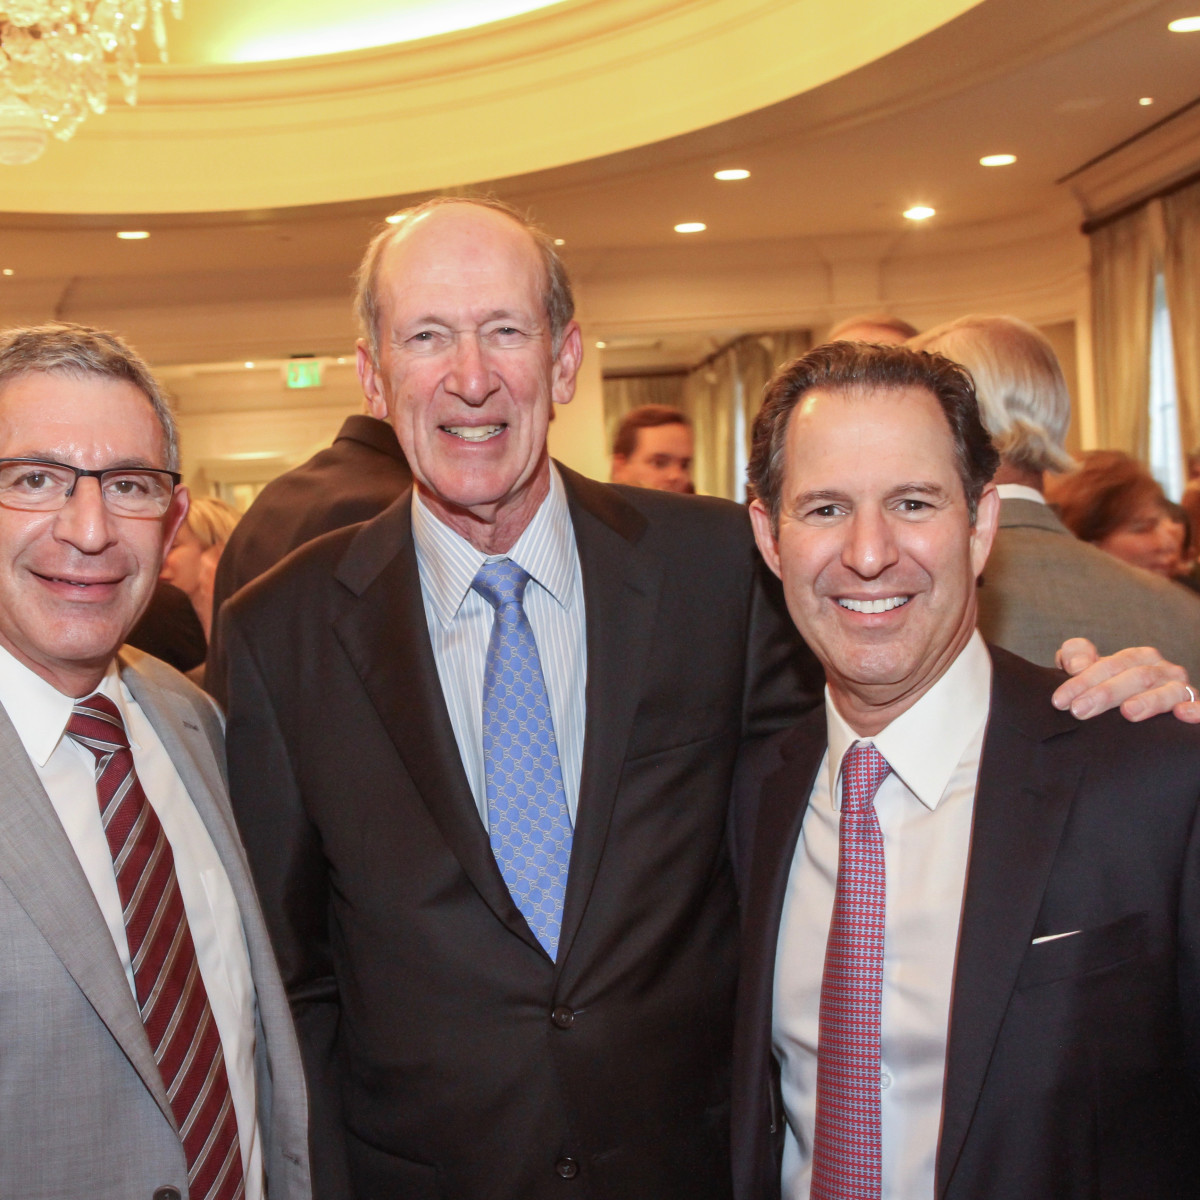 Jubilee of Caring/Dr Paul Klotman, Marc Shapiro and Kitch Taub